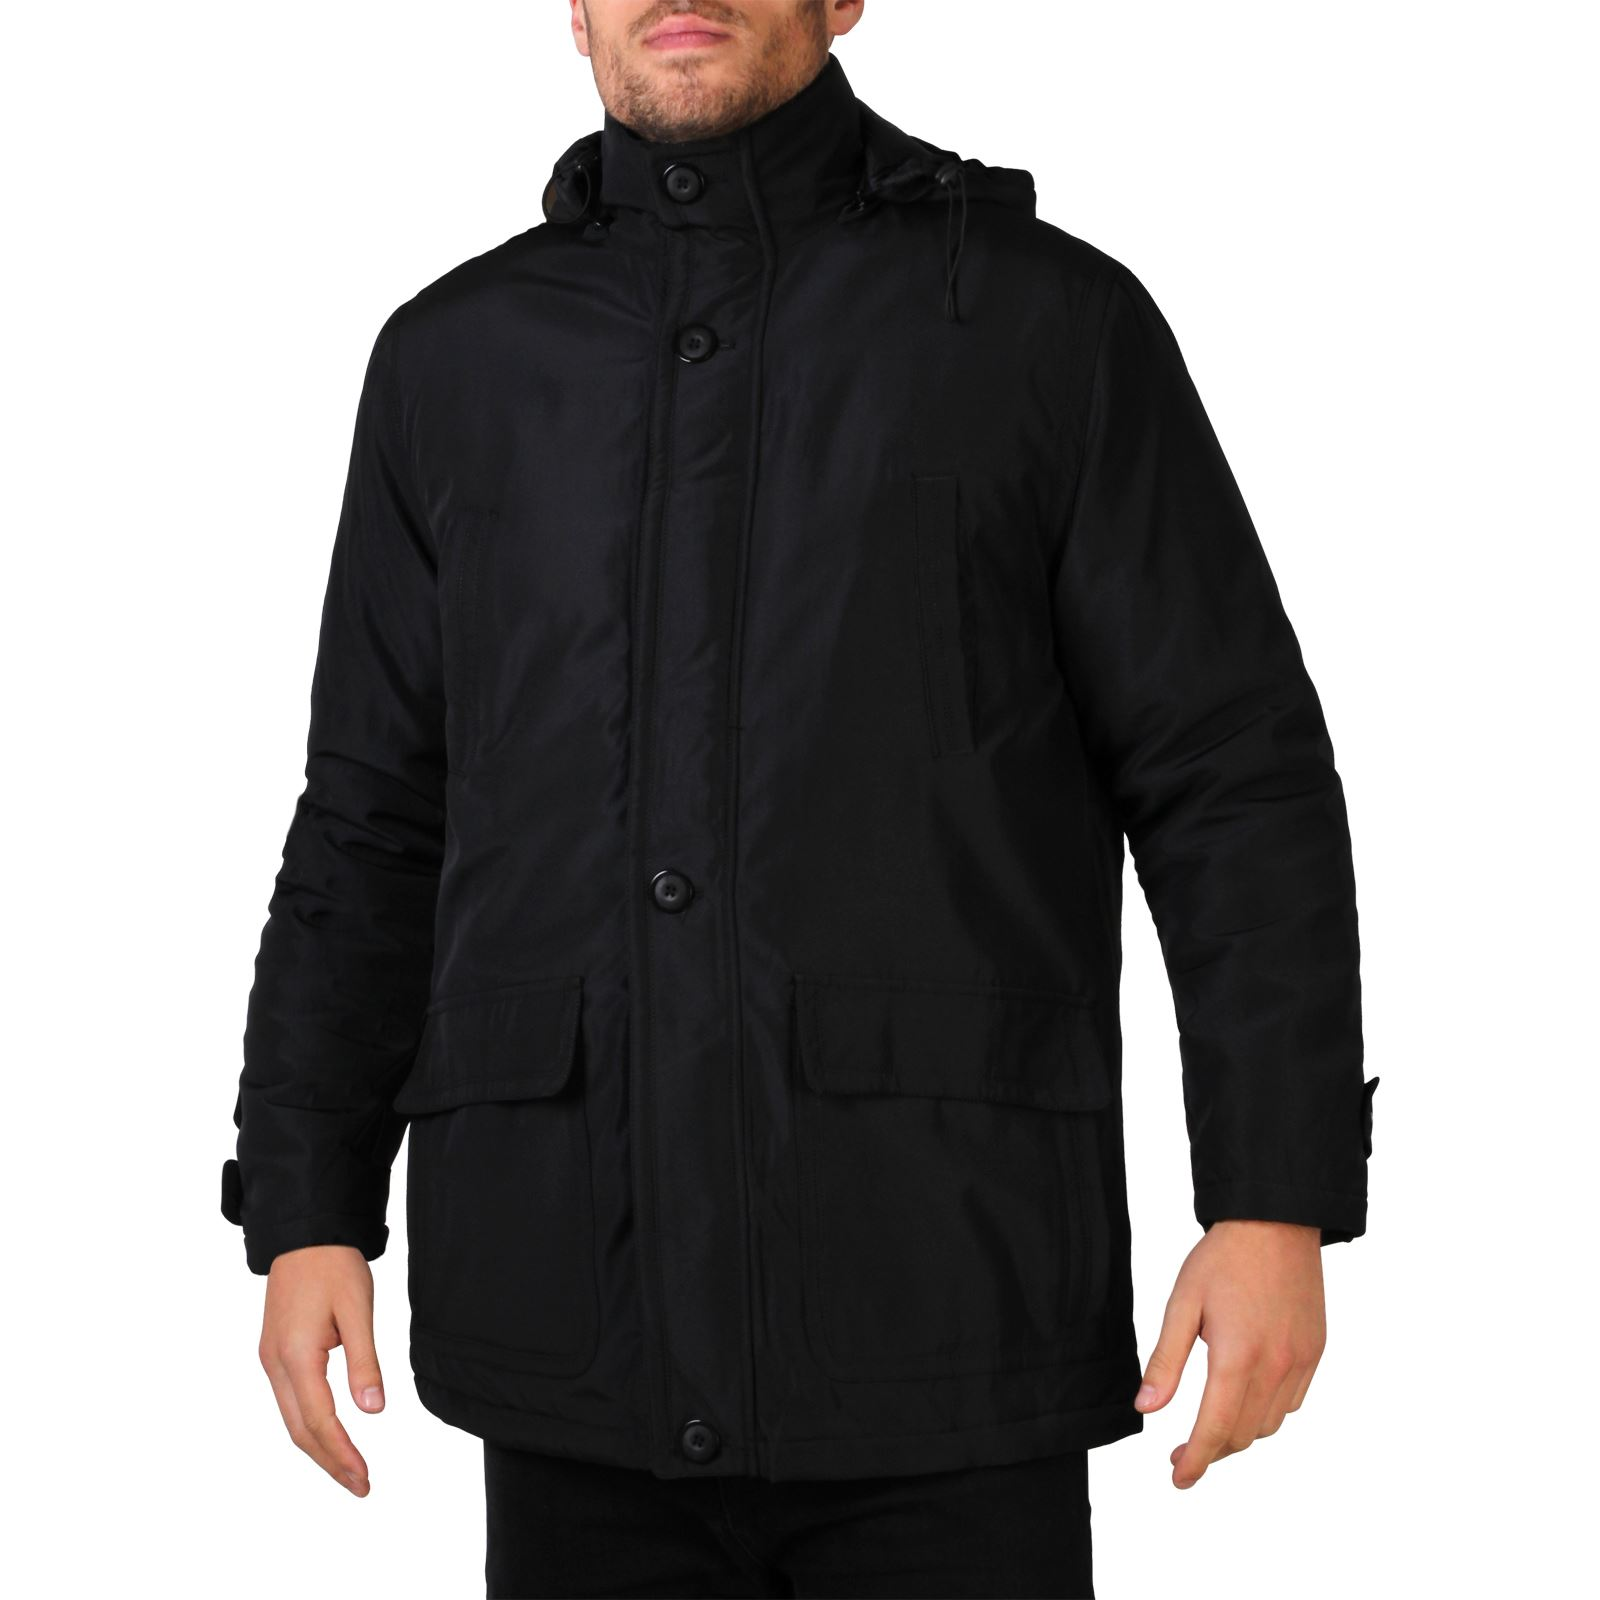 Cheap bomber jacket men, Buy Quality jackets for men directly from China jacket men Suppliers: Bomber Jacket Men Plus Size Jacket For Men Military Jacket Men Mens Spring Jackets And Coats Male Customize Your loadingtag.ga27 Enjoy Free Shipping Worldwide! Limited Time Sale Easy Return.5/5(1).